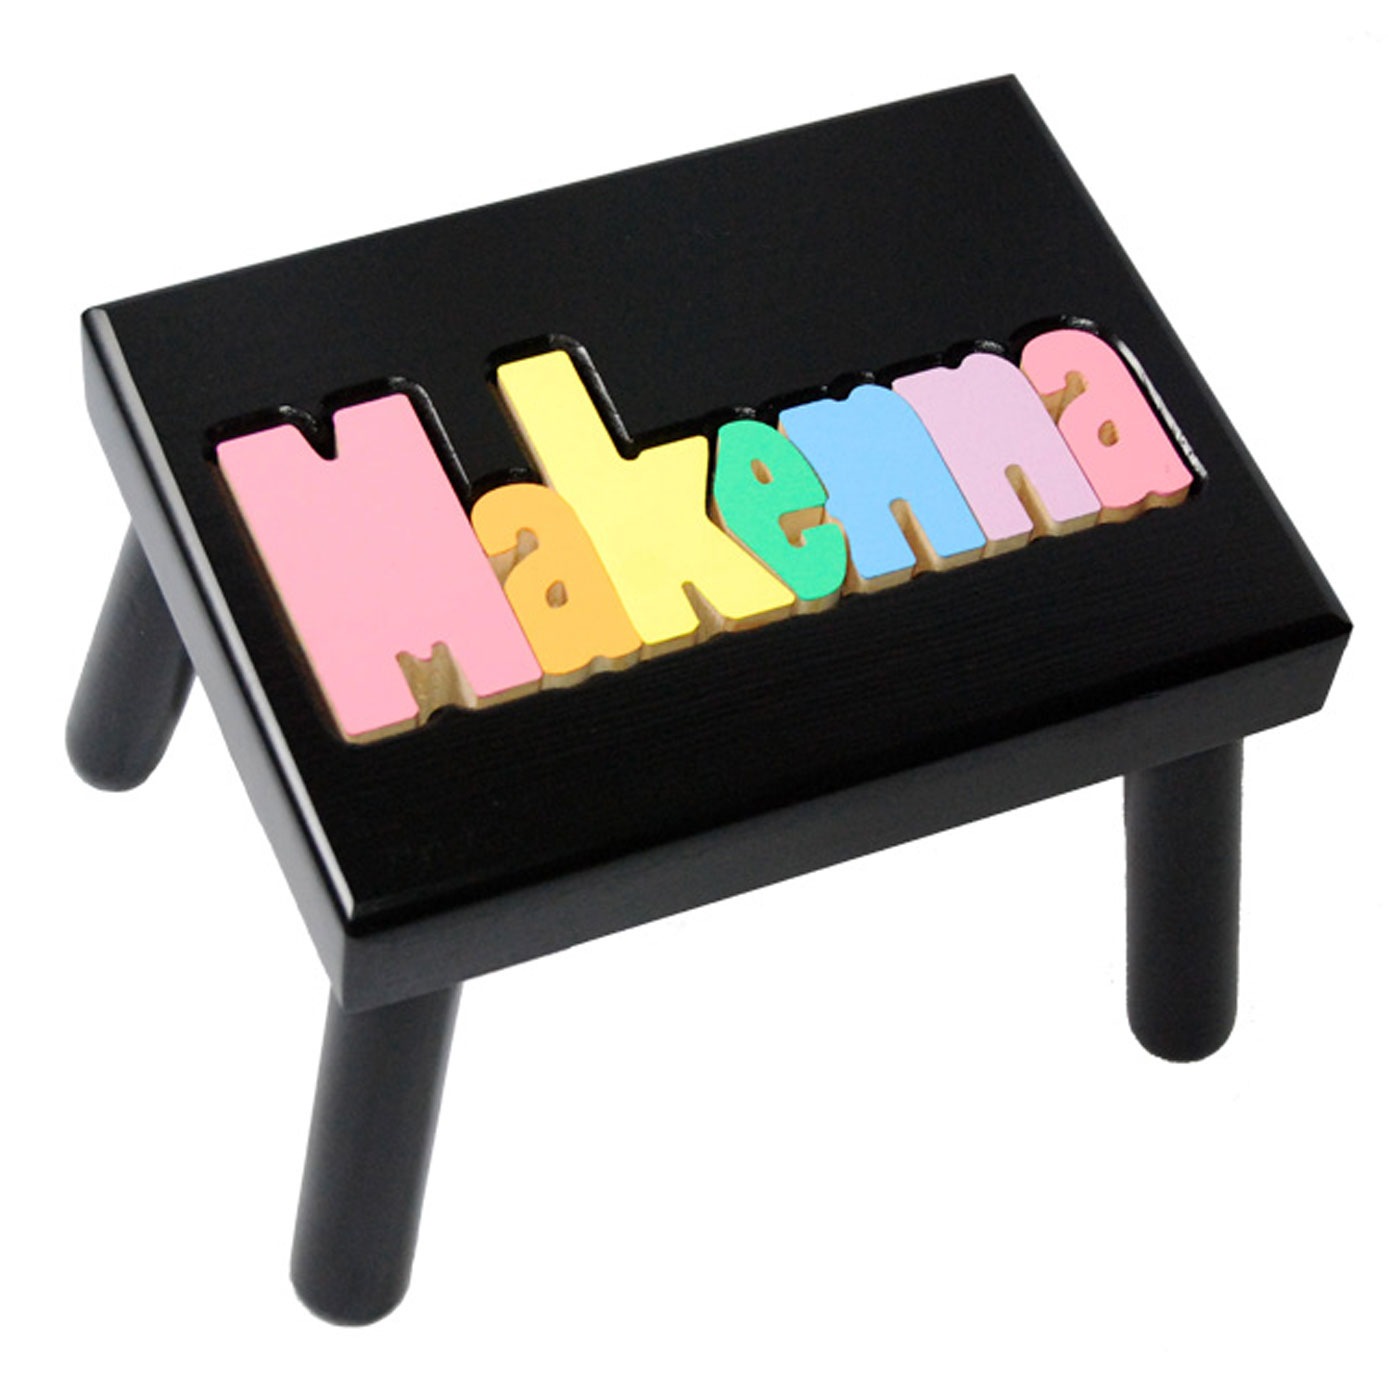 Small Black Name Stool in Pastel Colors